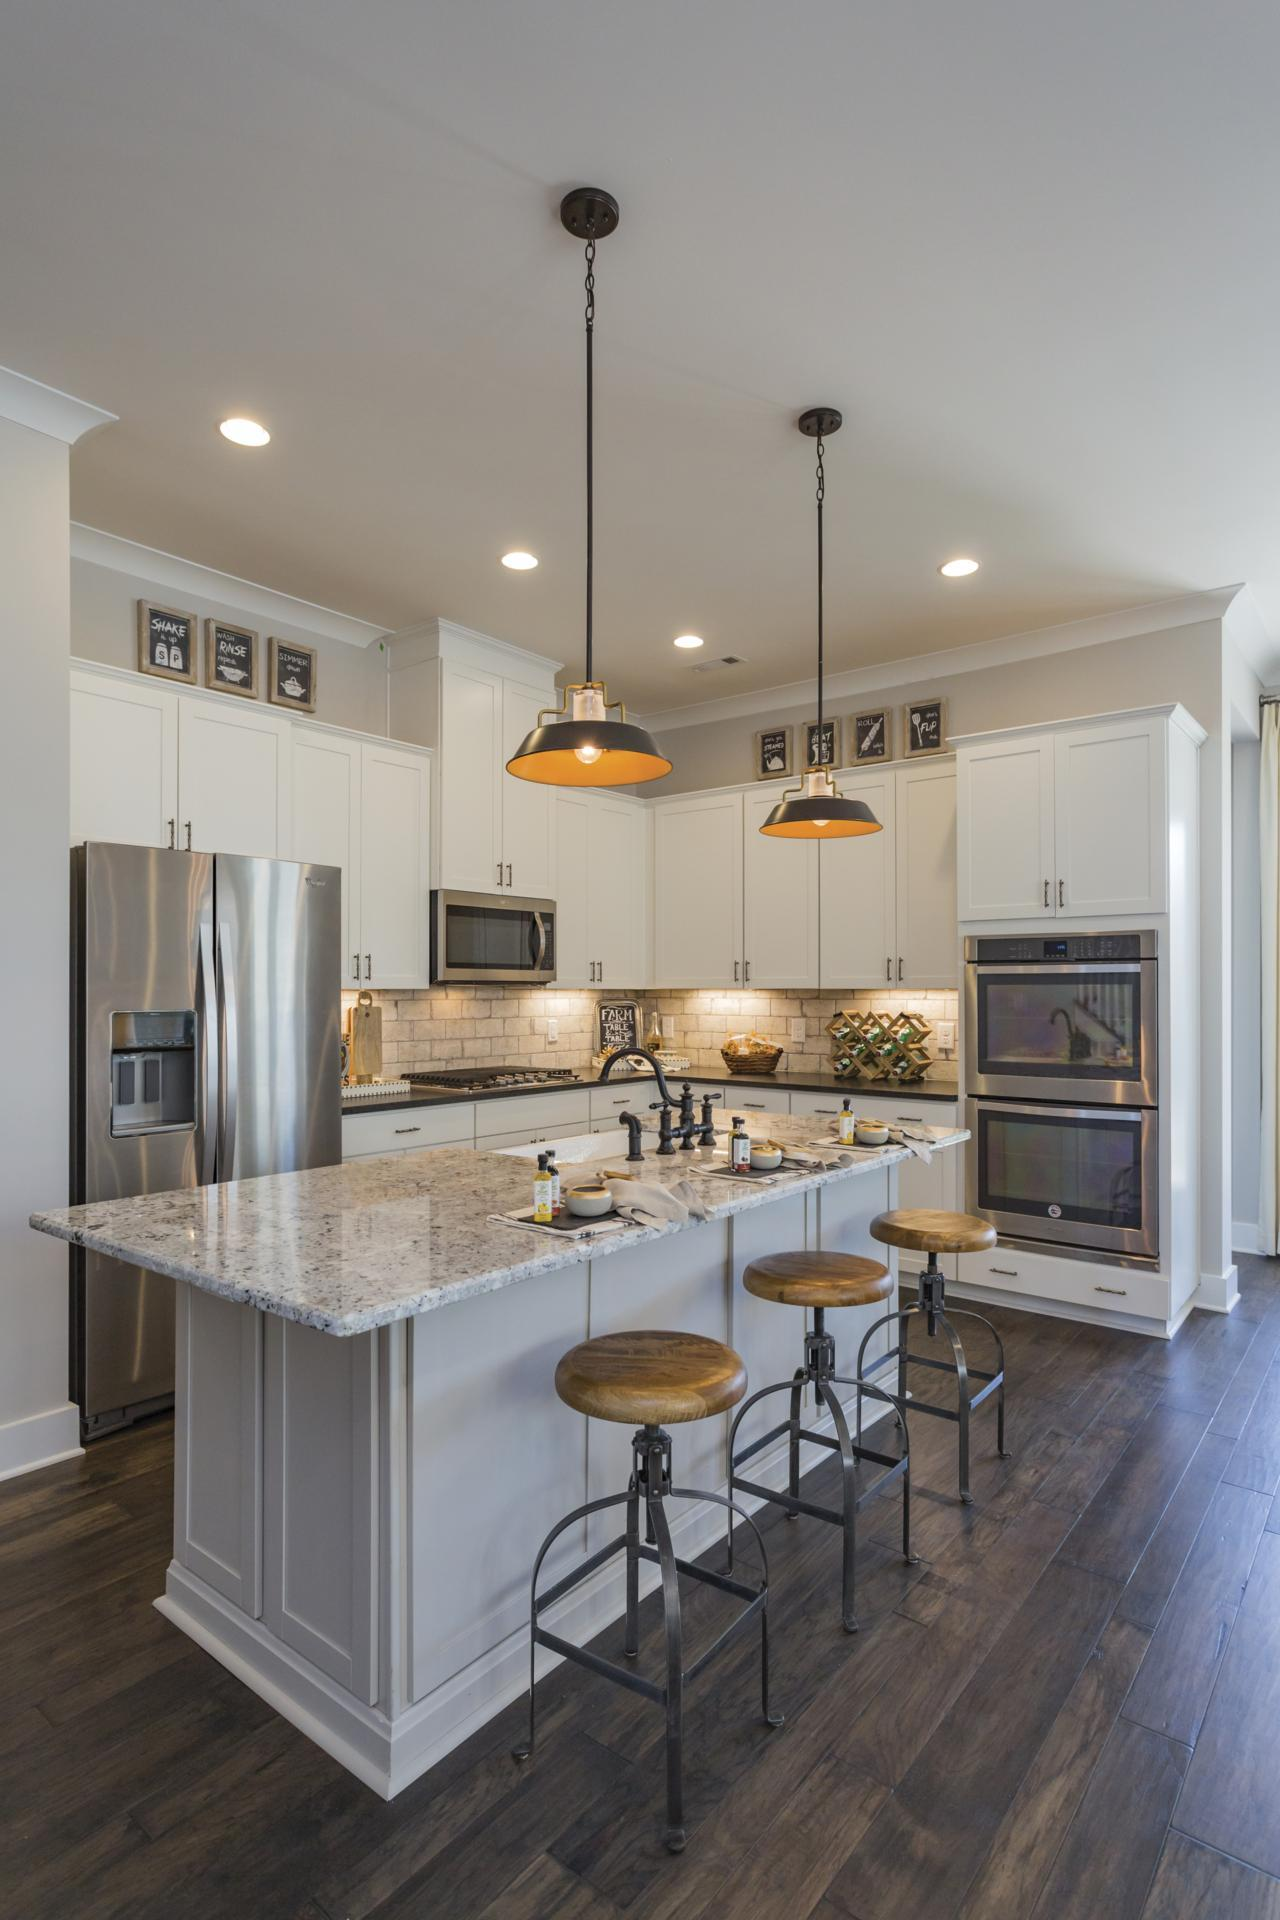 Kitchen featured in the Collette By Drees Homes in Nashville, TN